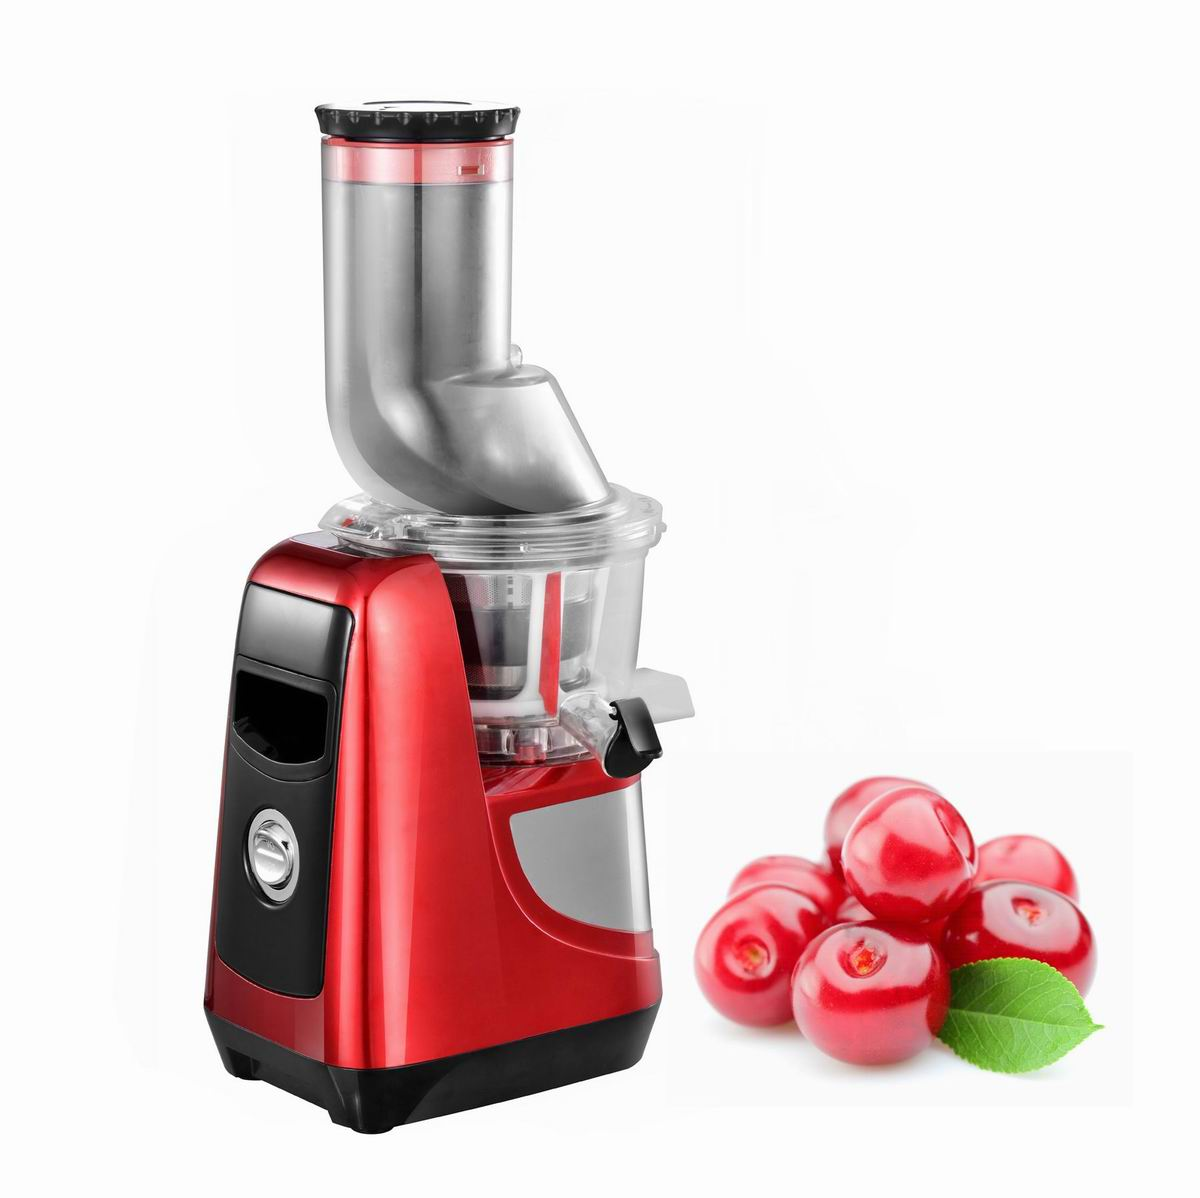 Slow Juicer Manufacturer : 2015 New big mouth slow masticating juicer purchasing, souring agent ECvv.com purchasing ...